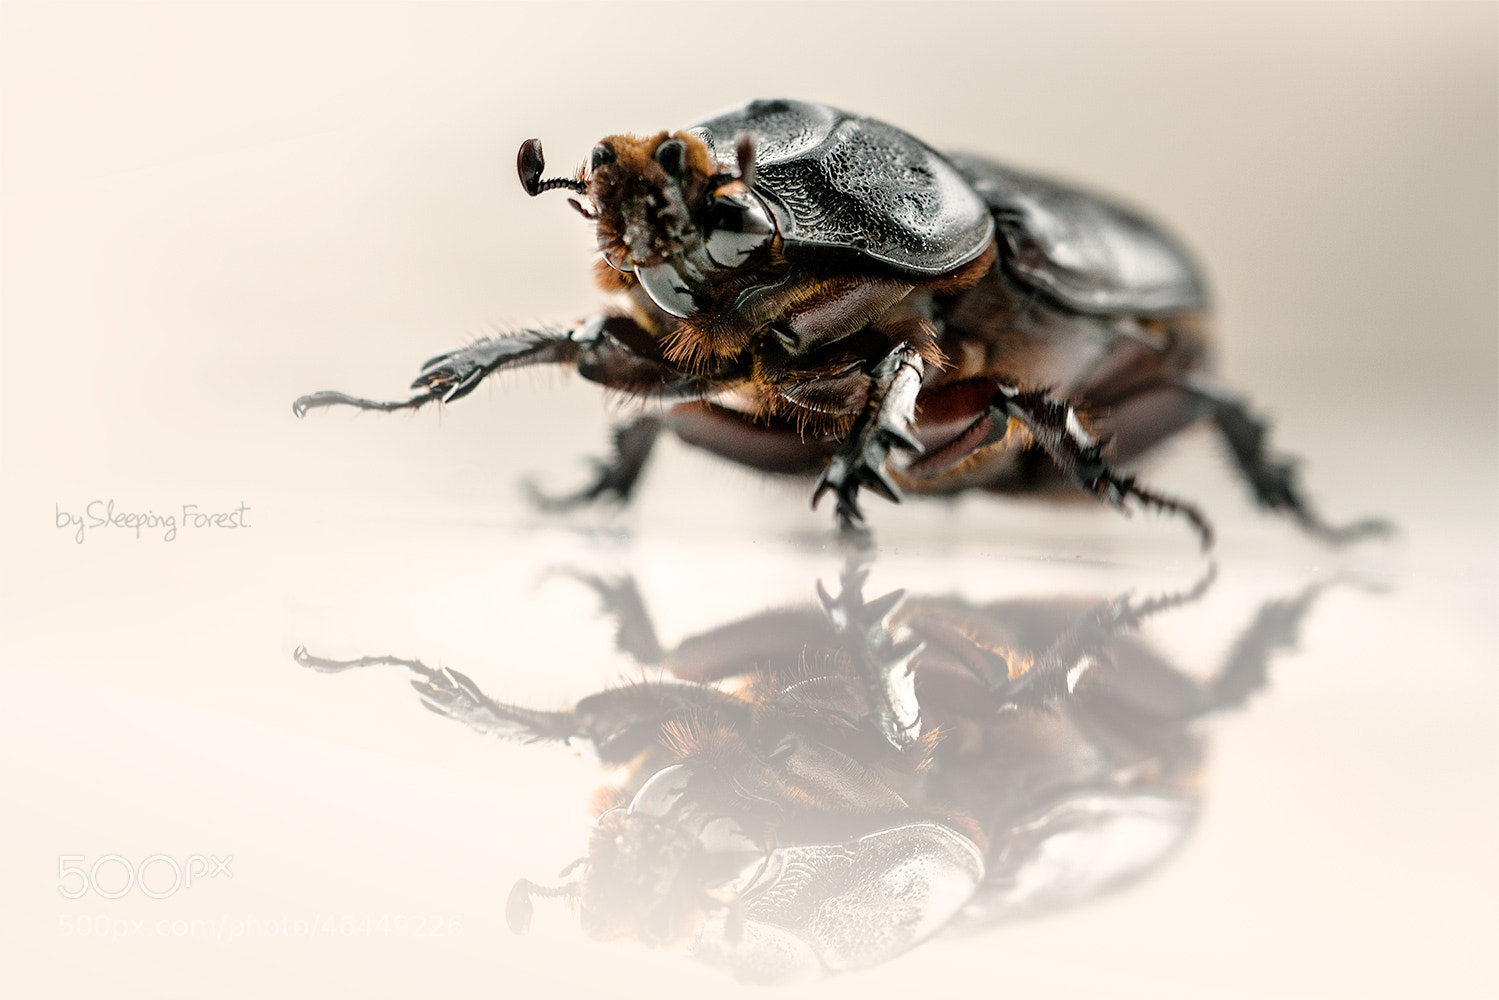 Photograph Beetle by Aronnsak Teelanuth on 500px